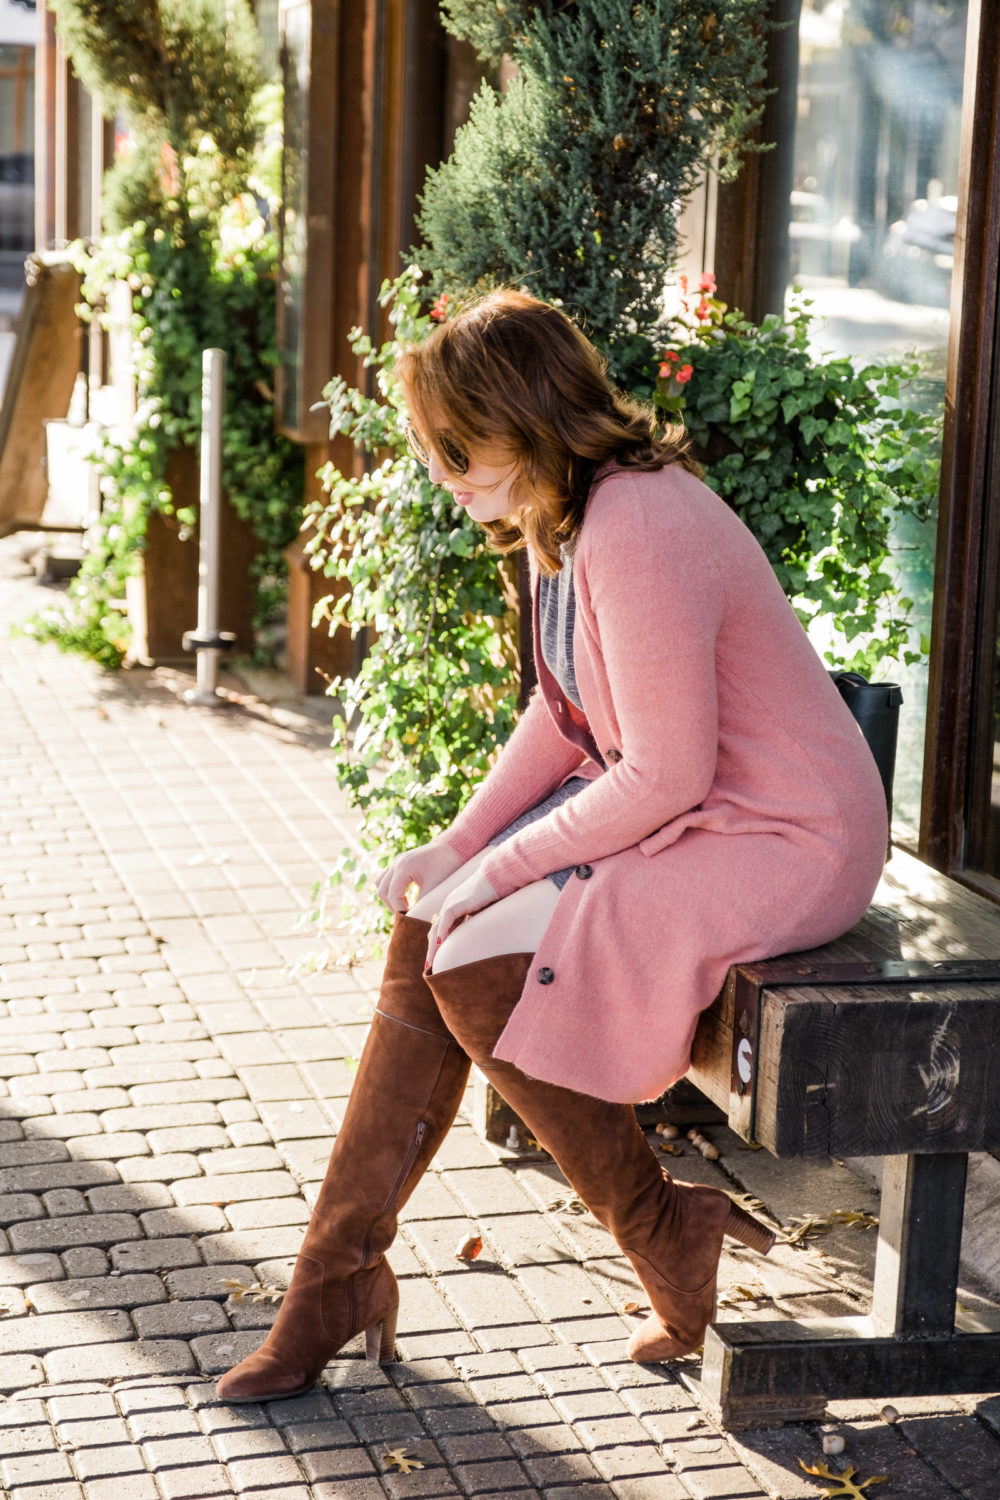 Comfy Over the Knee Boots | Best Suede Boots for Fall | Winter Outfit Idea